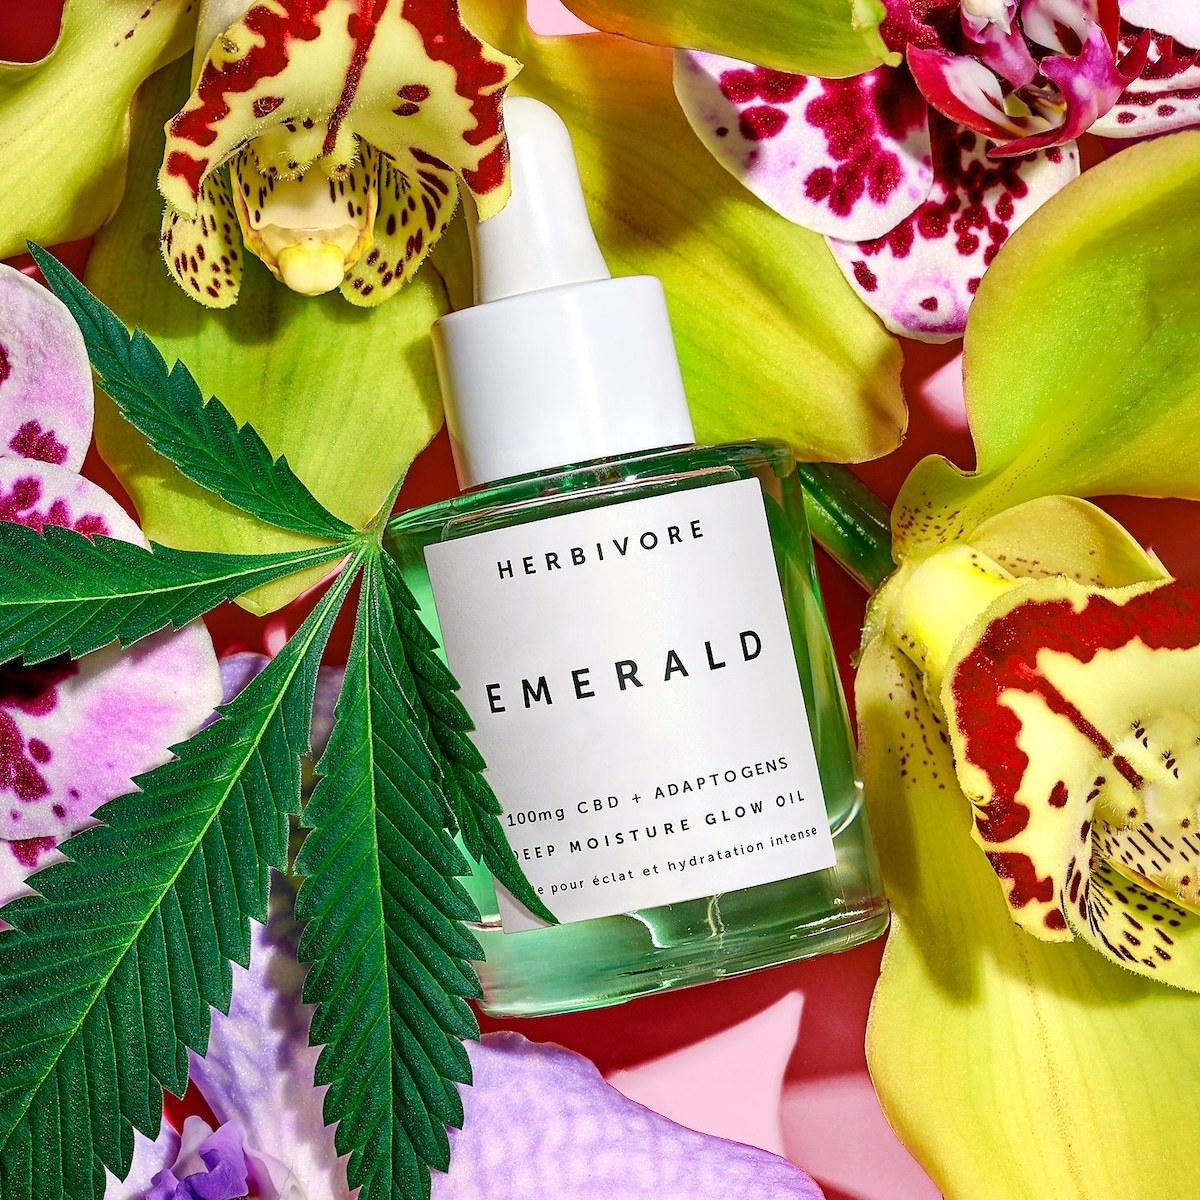 A bottle of Herbivore Emerald CBD + Adaptogens Deep Moisture Glow Oil surrounded by various leaves, flowers, and a marijuana plant